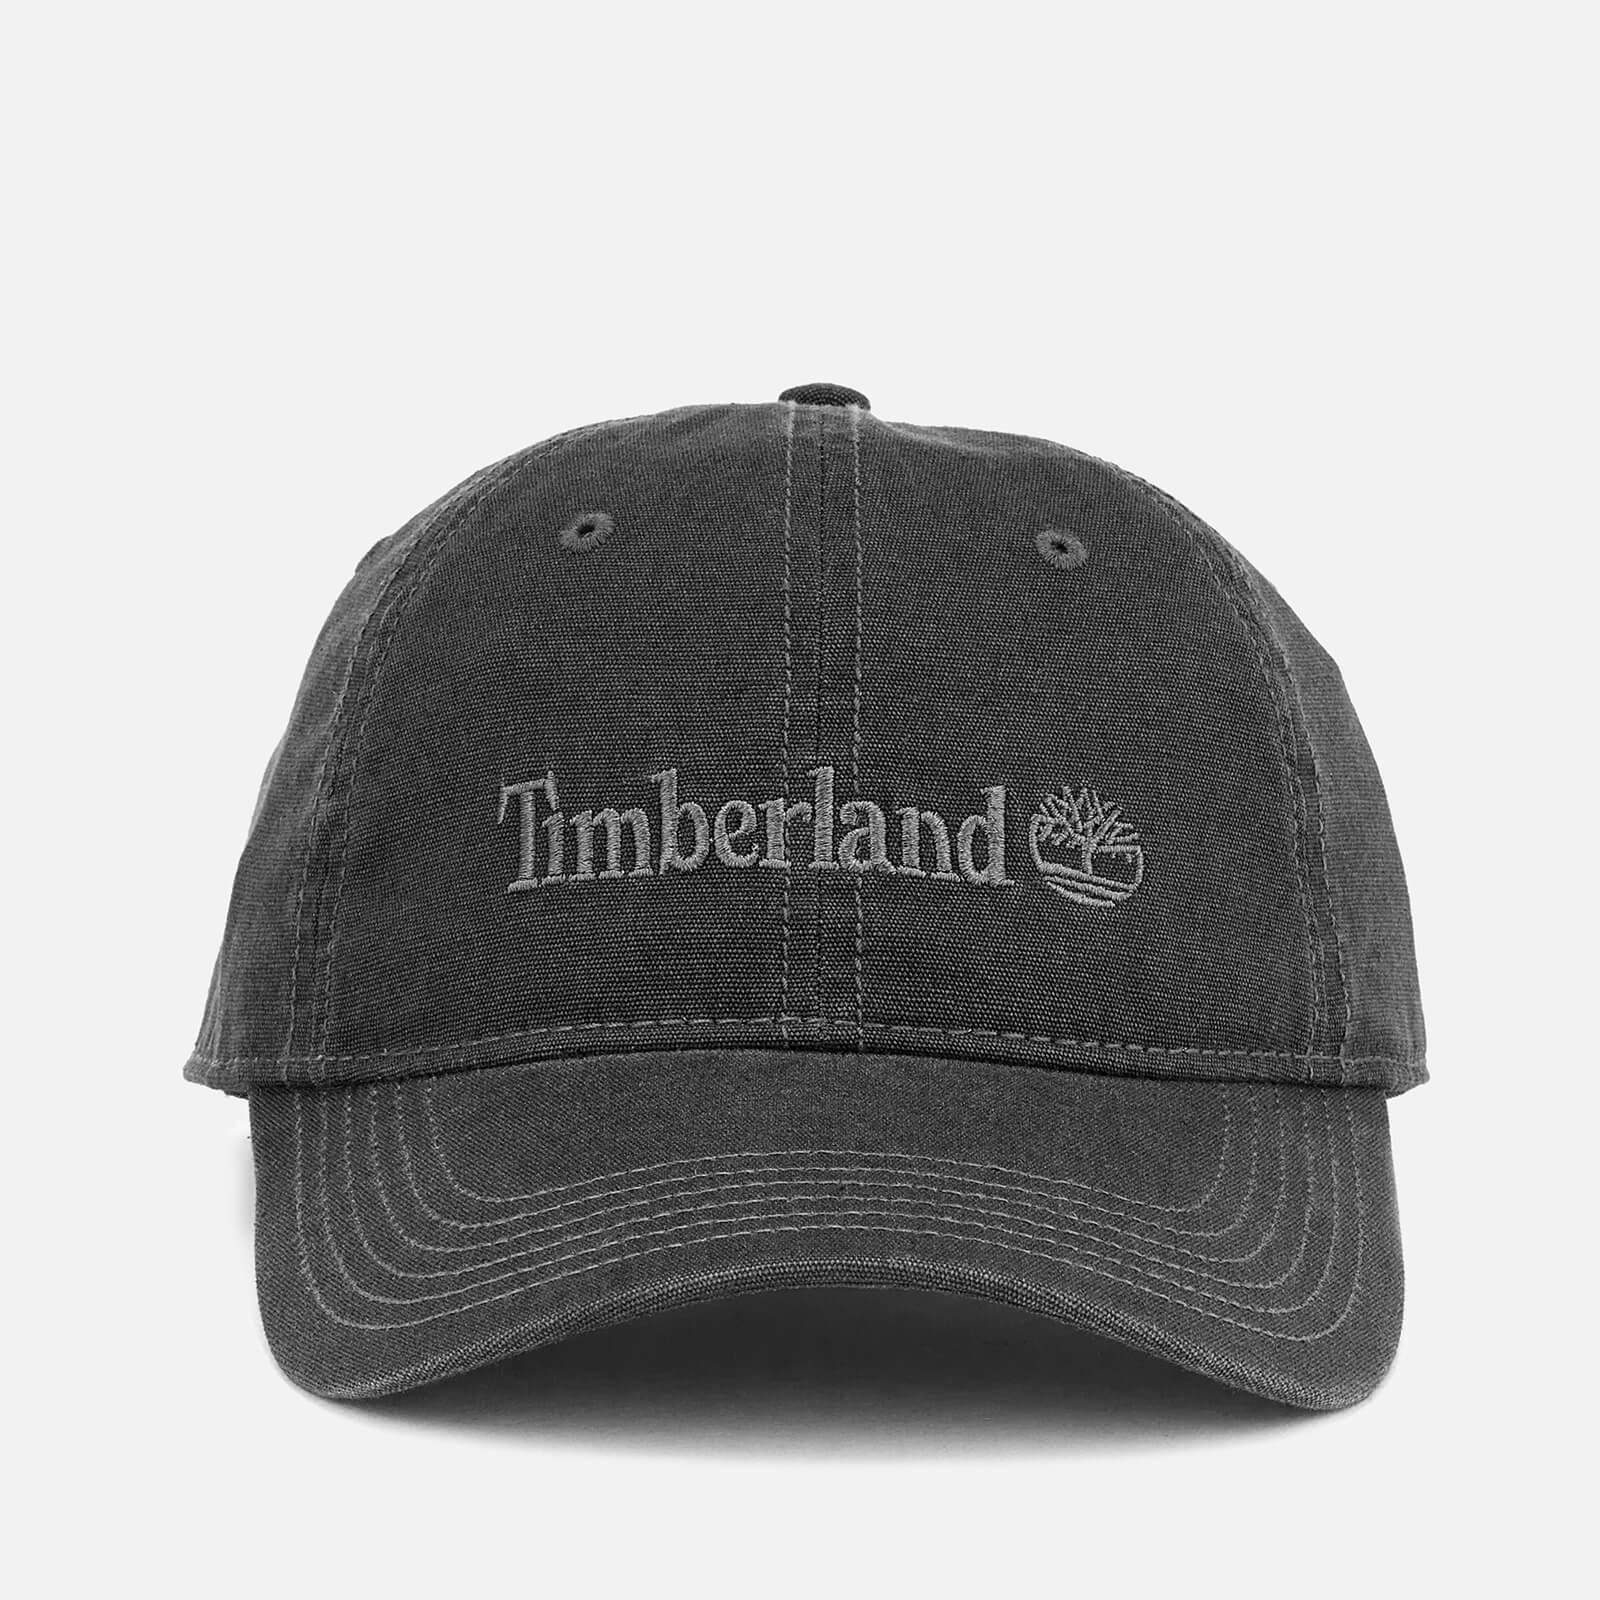 ef0ded43 Timberland - Multicolor Cotton Canvas Cap for Men - Lyst. View fullscreen